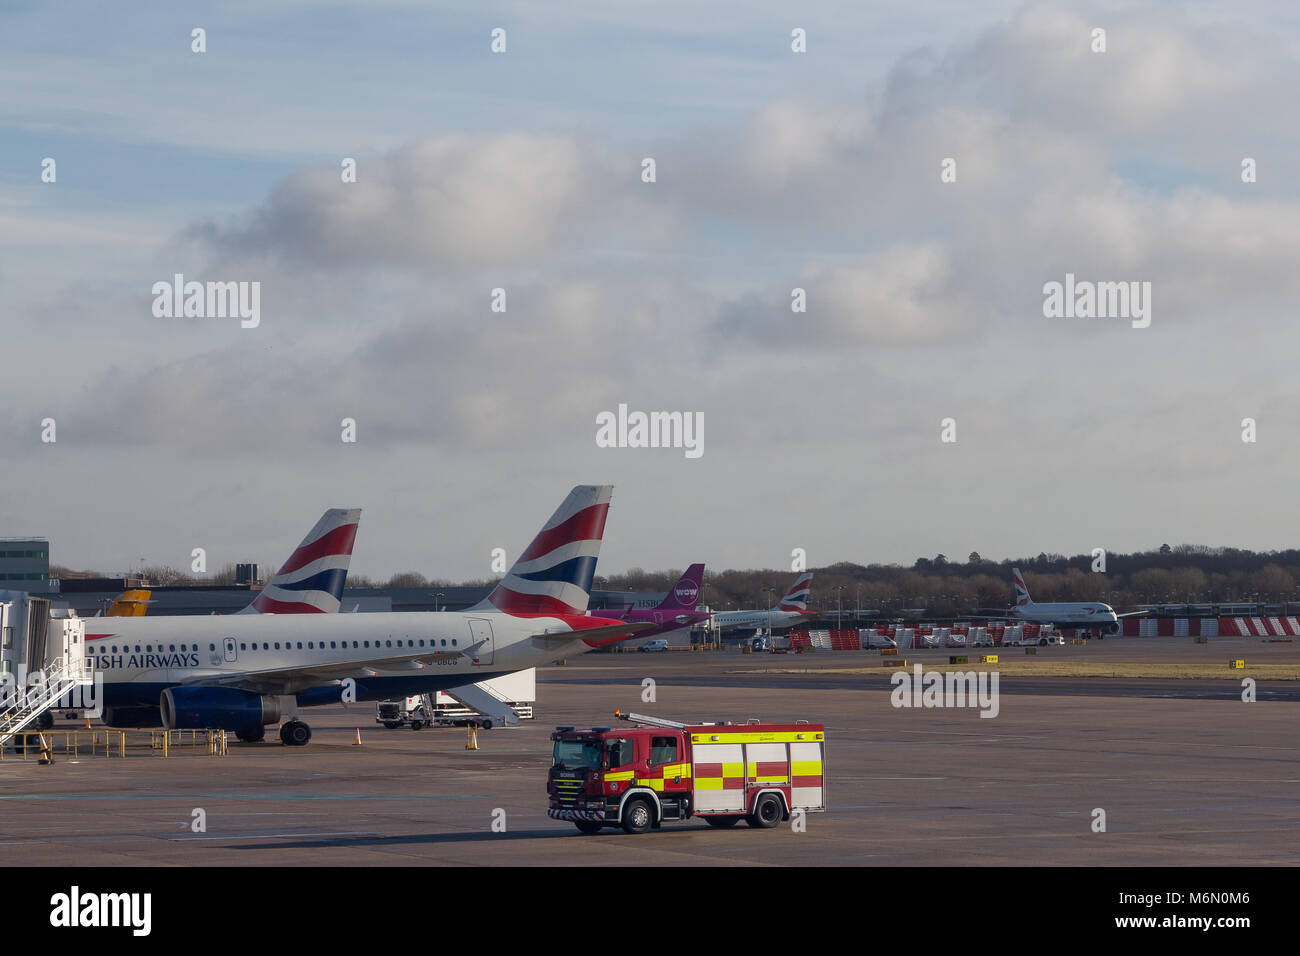 A fire engine in front of British Airways airliners at Heathrow Airport, London, UK. Wednesday January 10th 2018 - Stock Image